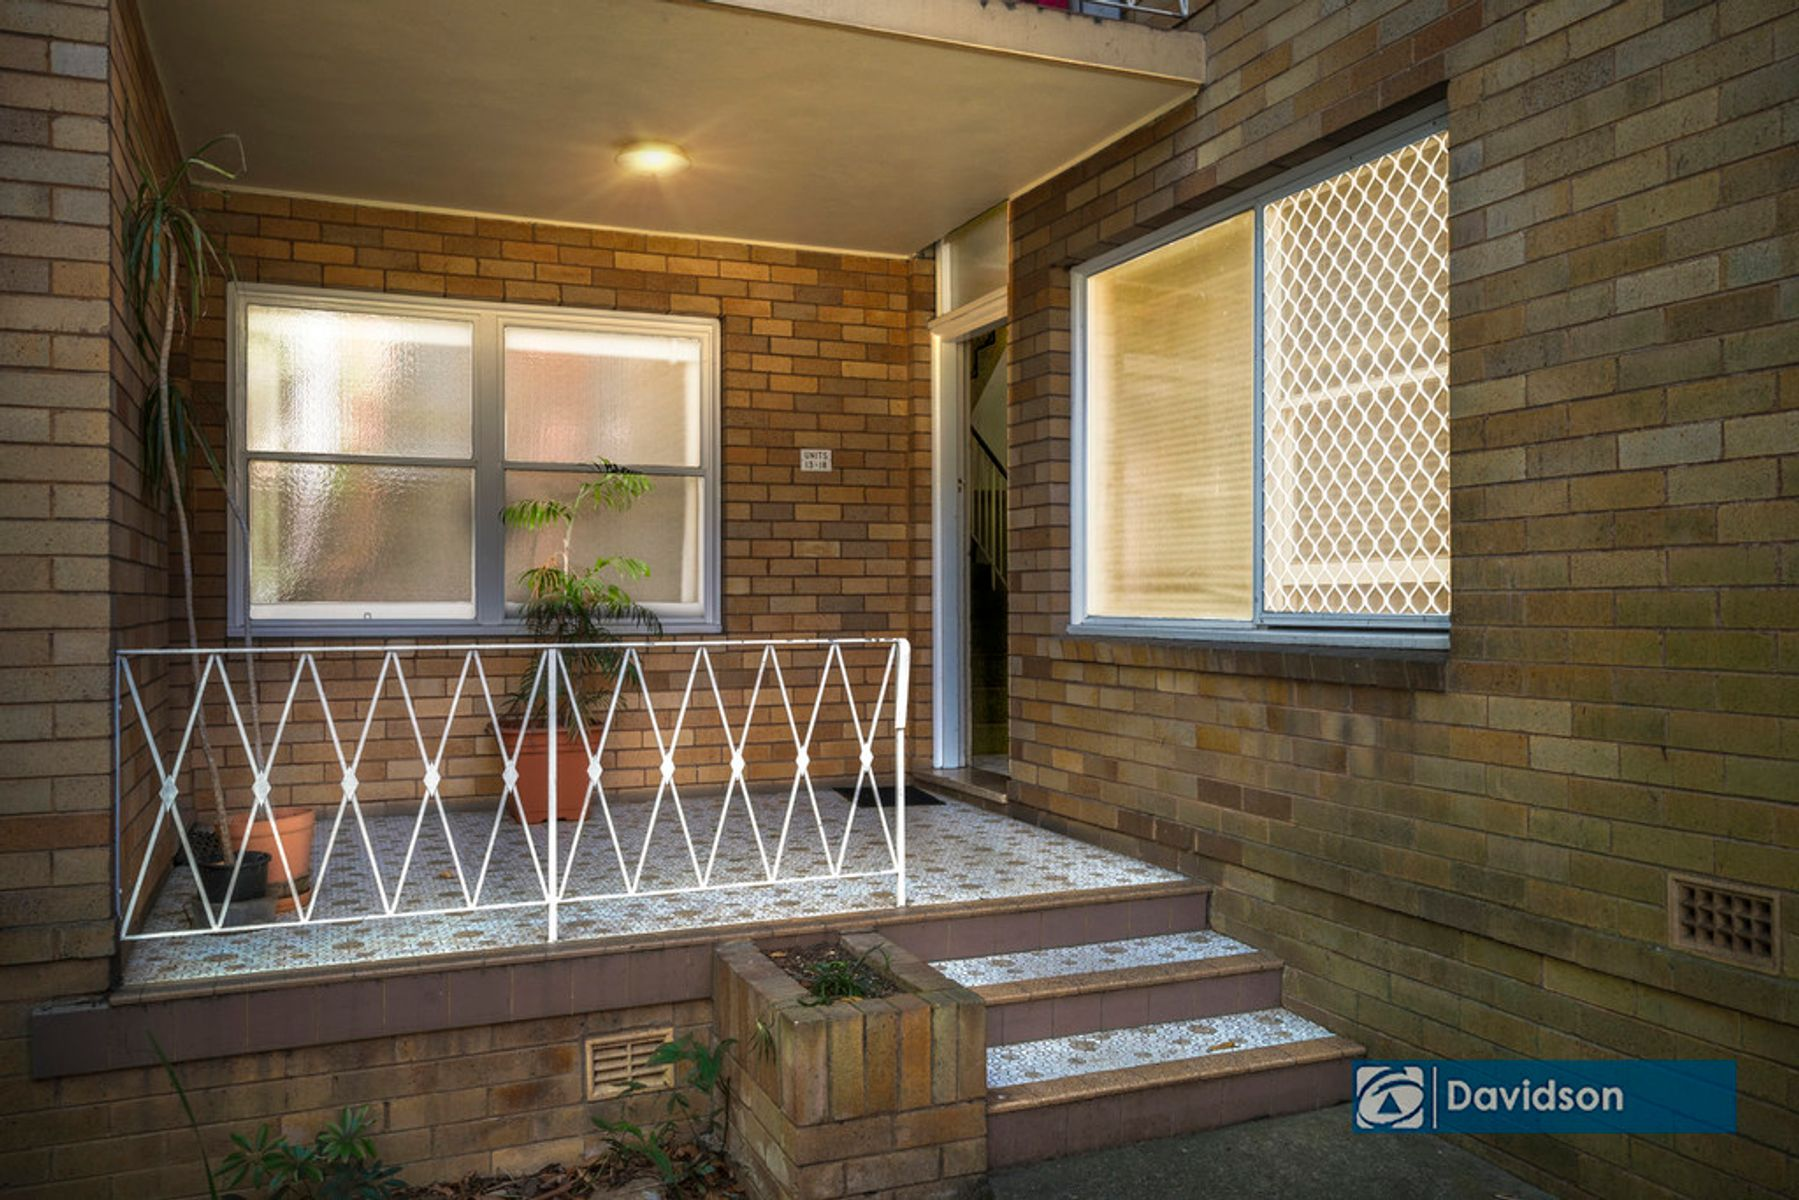 13/9 Everton Road, Strathfield, NSW 2135